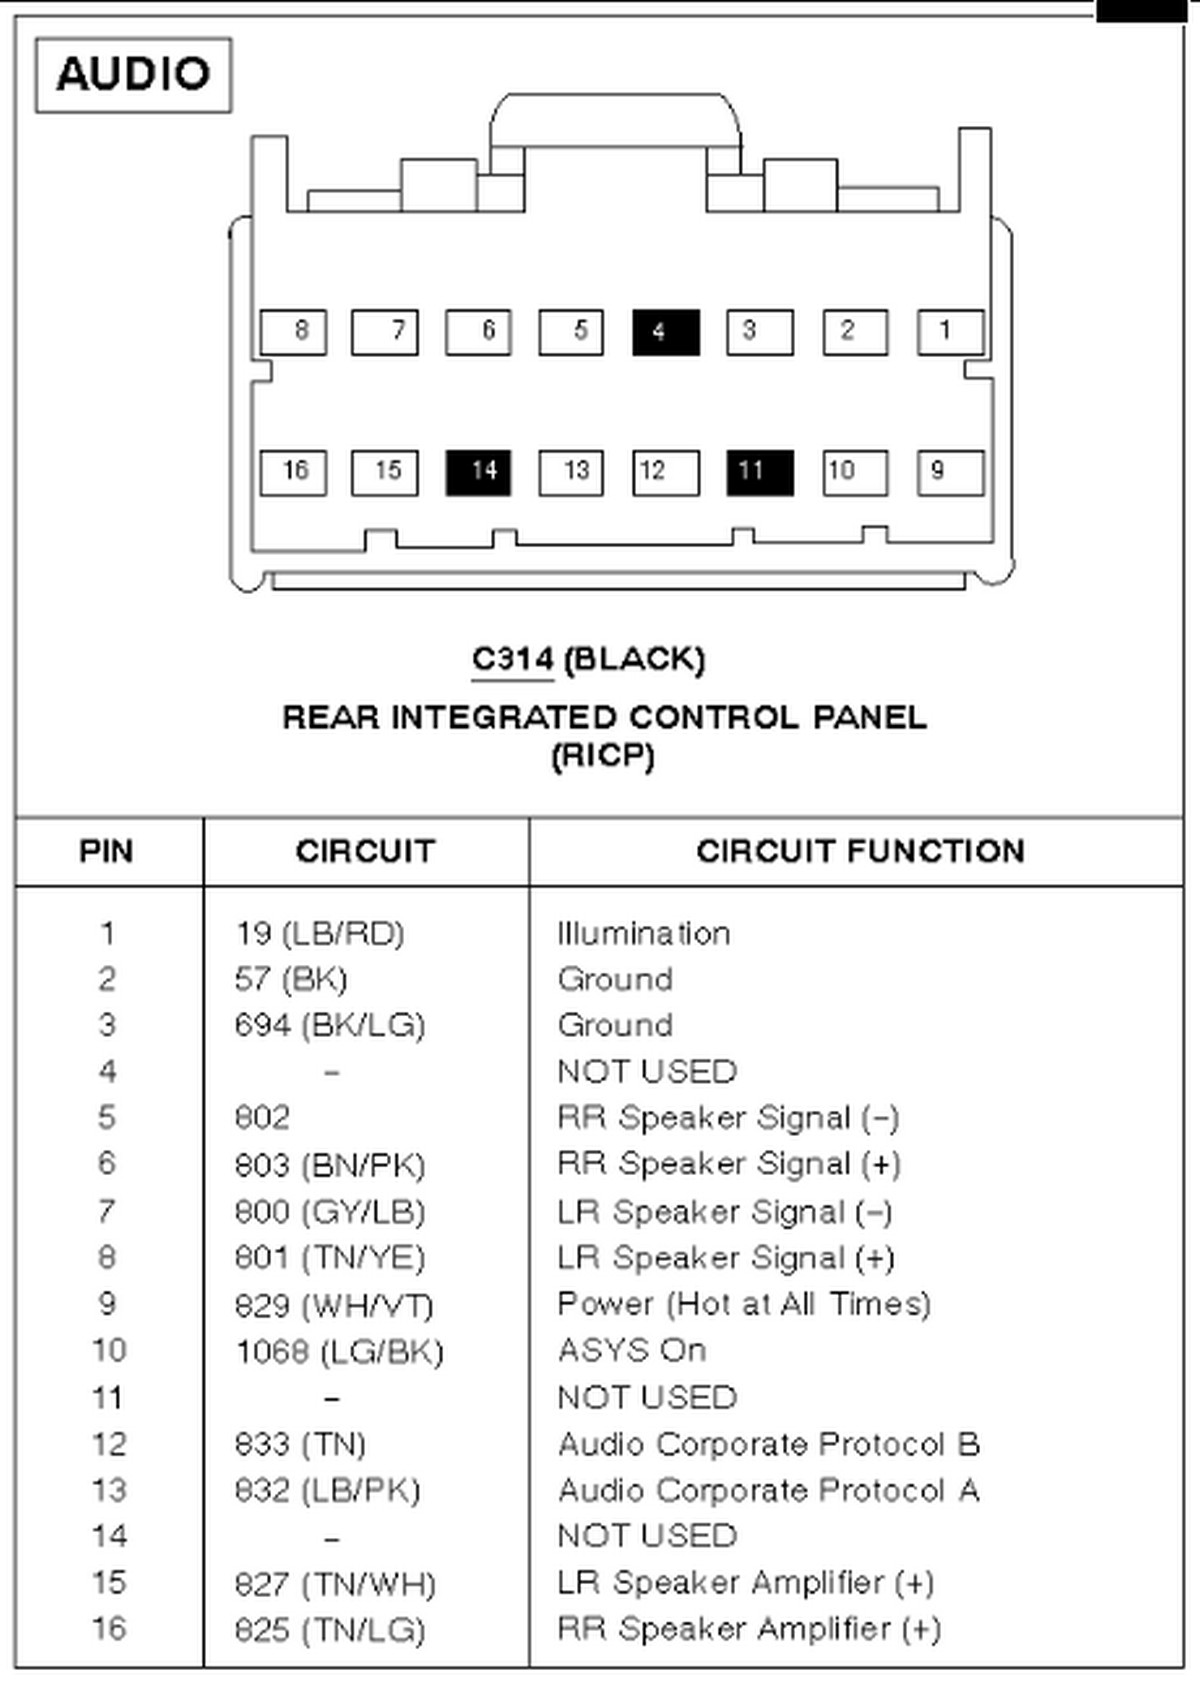 Ford Car Radio Stereo Audio Wiring Diagram Autoradio Connector Wire Visteon Harness Expedition Eddie Bauer 2001